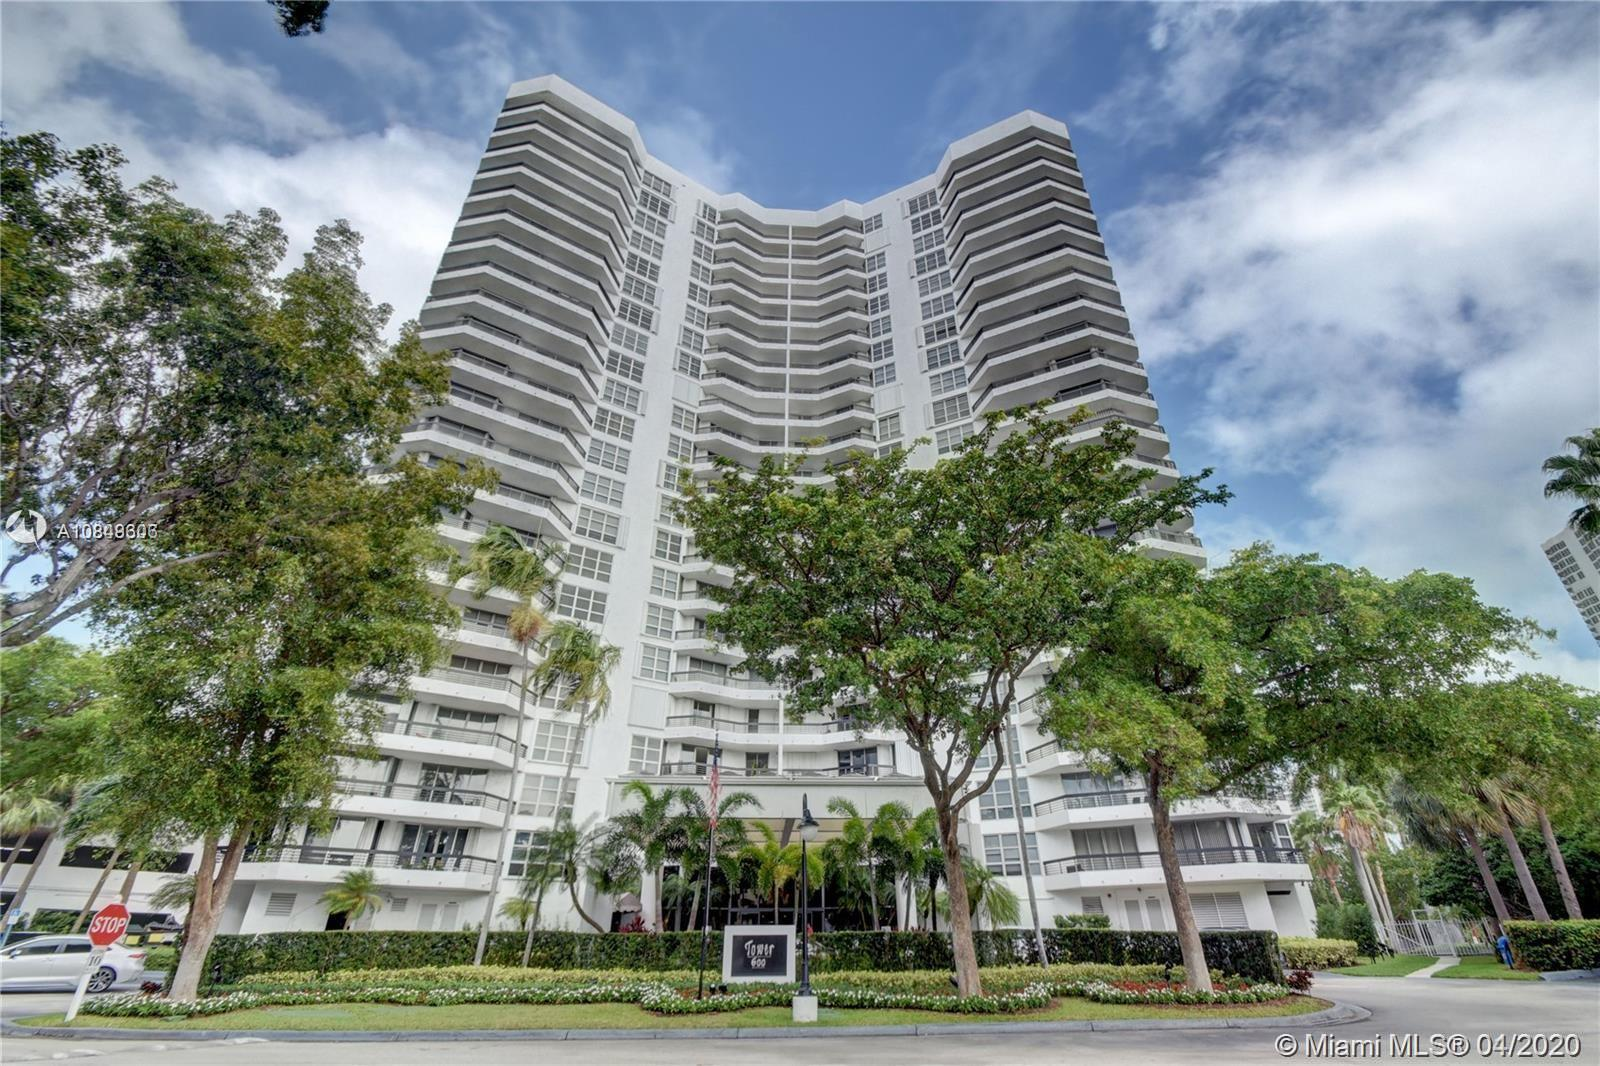 Best Deal for a Corner unit in Mystic Point!! Come and show this under market value, large kitchen,